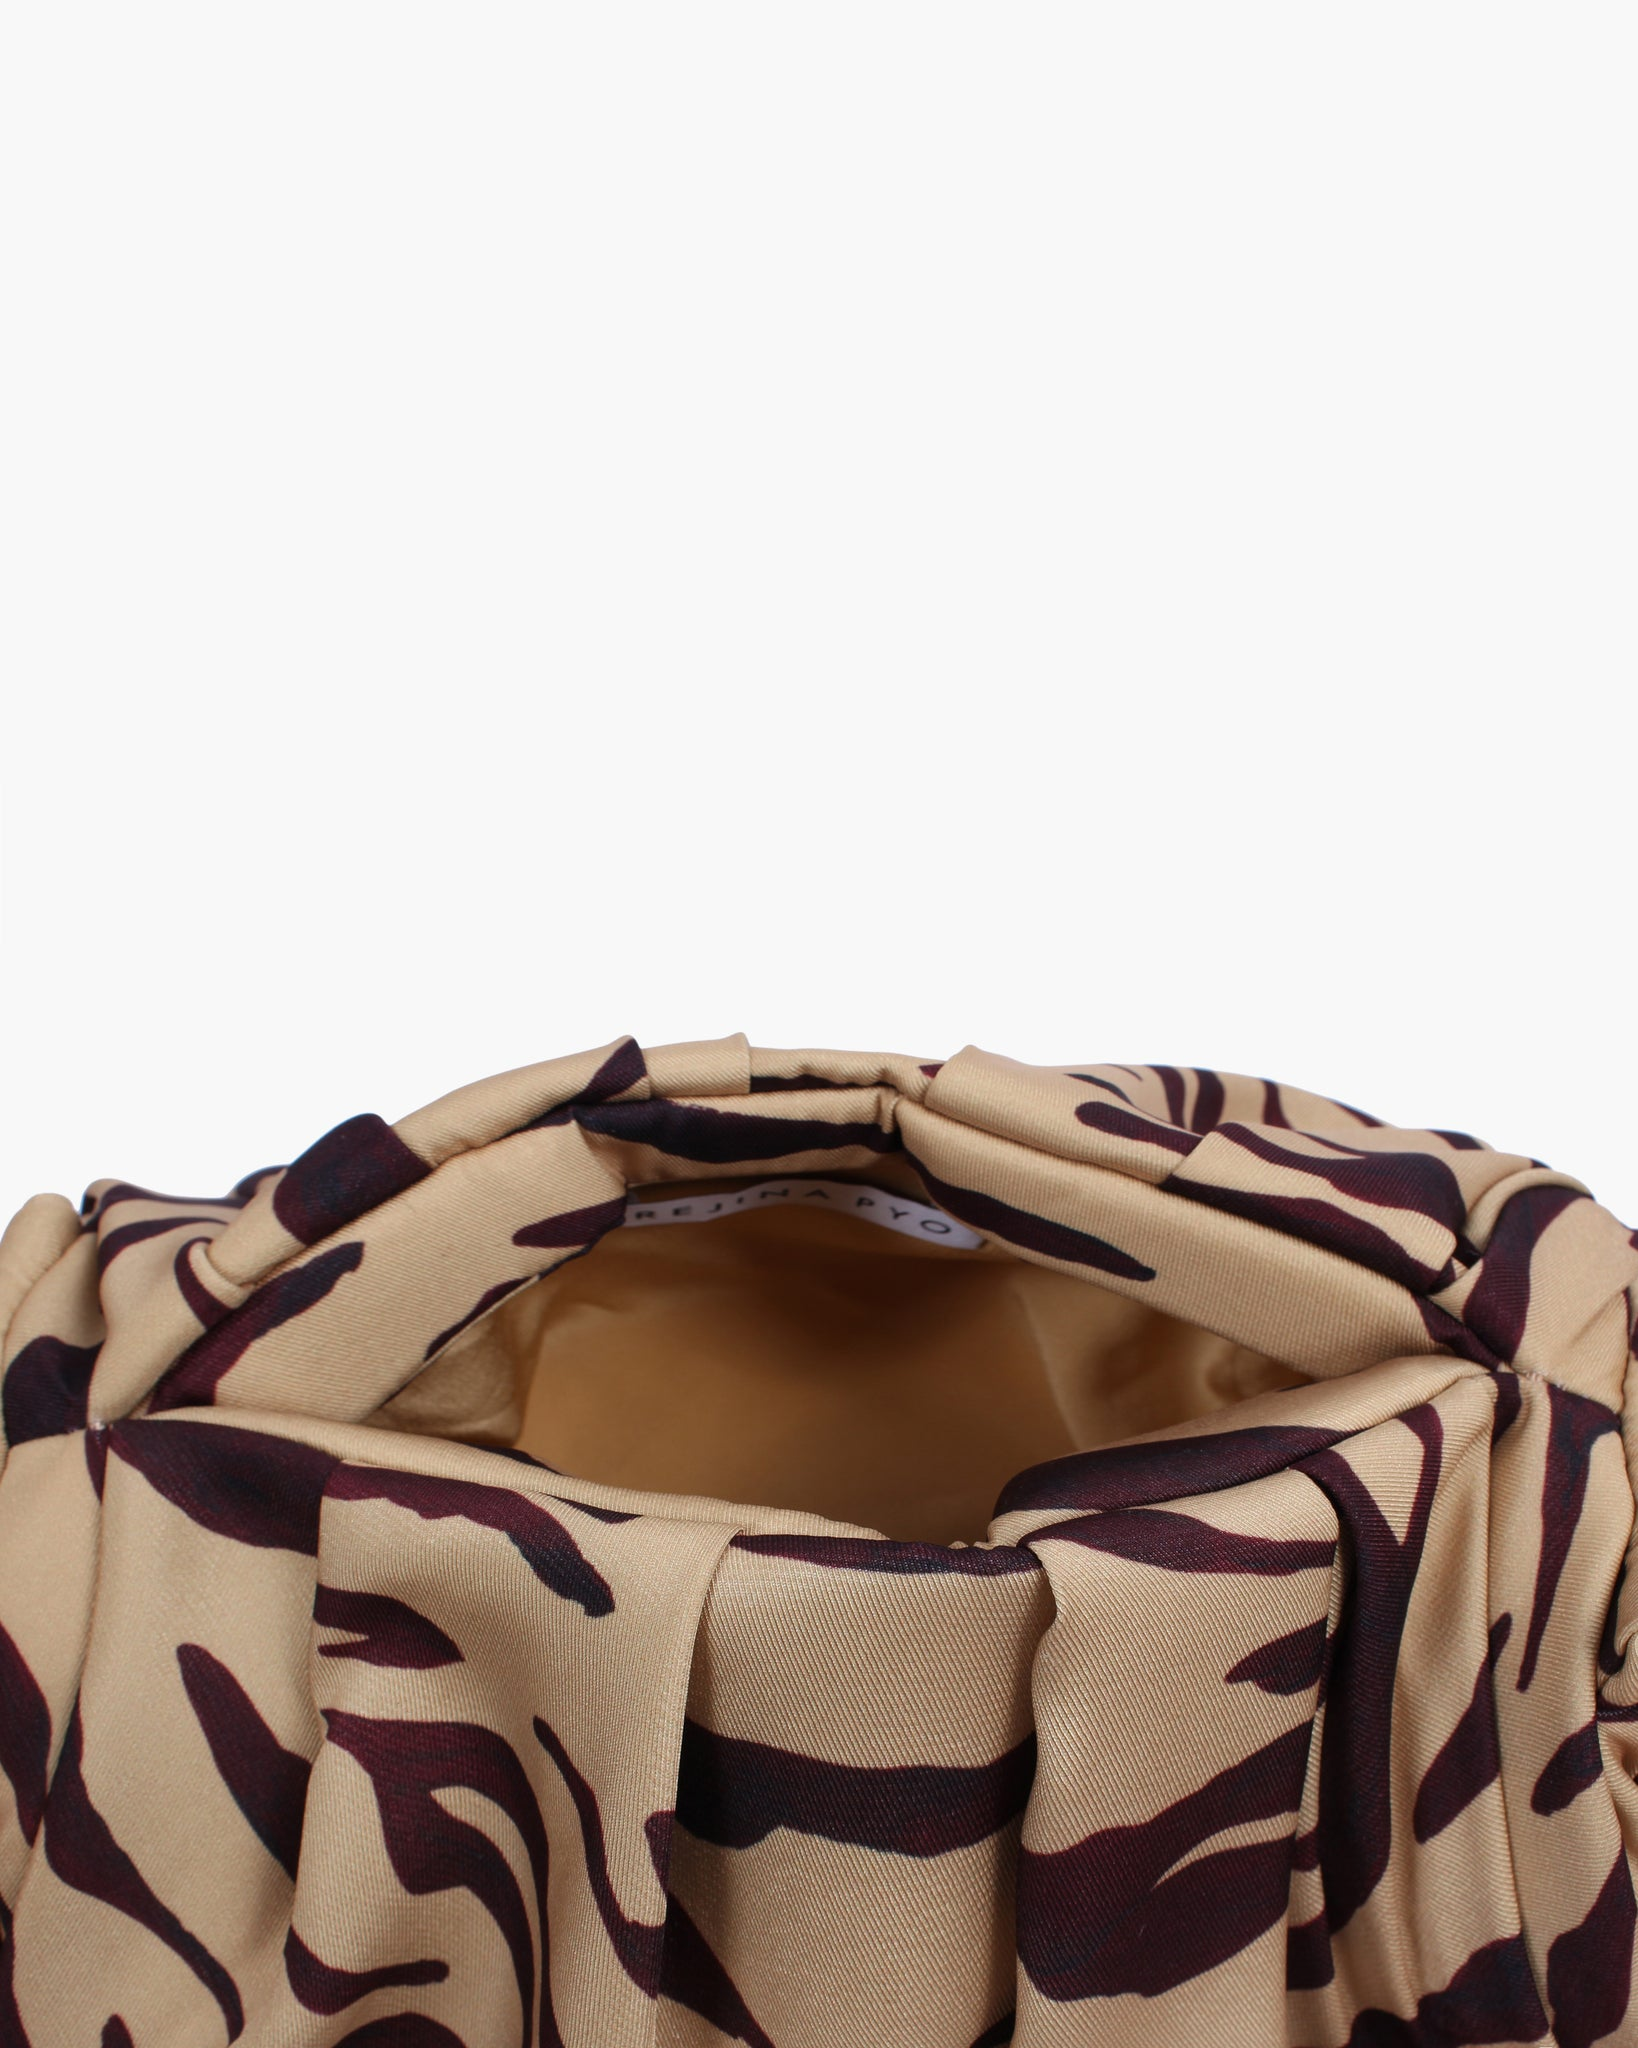 Nane Bag Cotton Print Tiger Beige